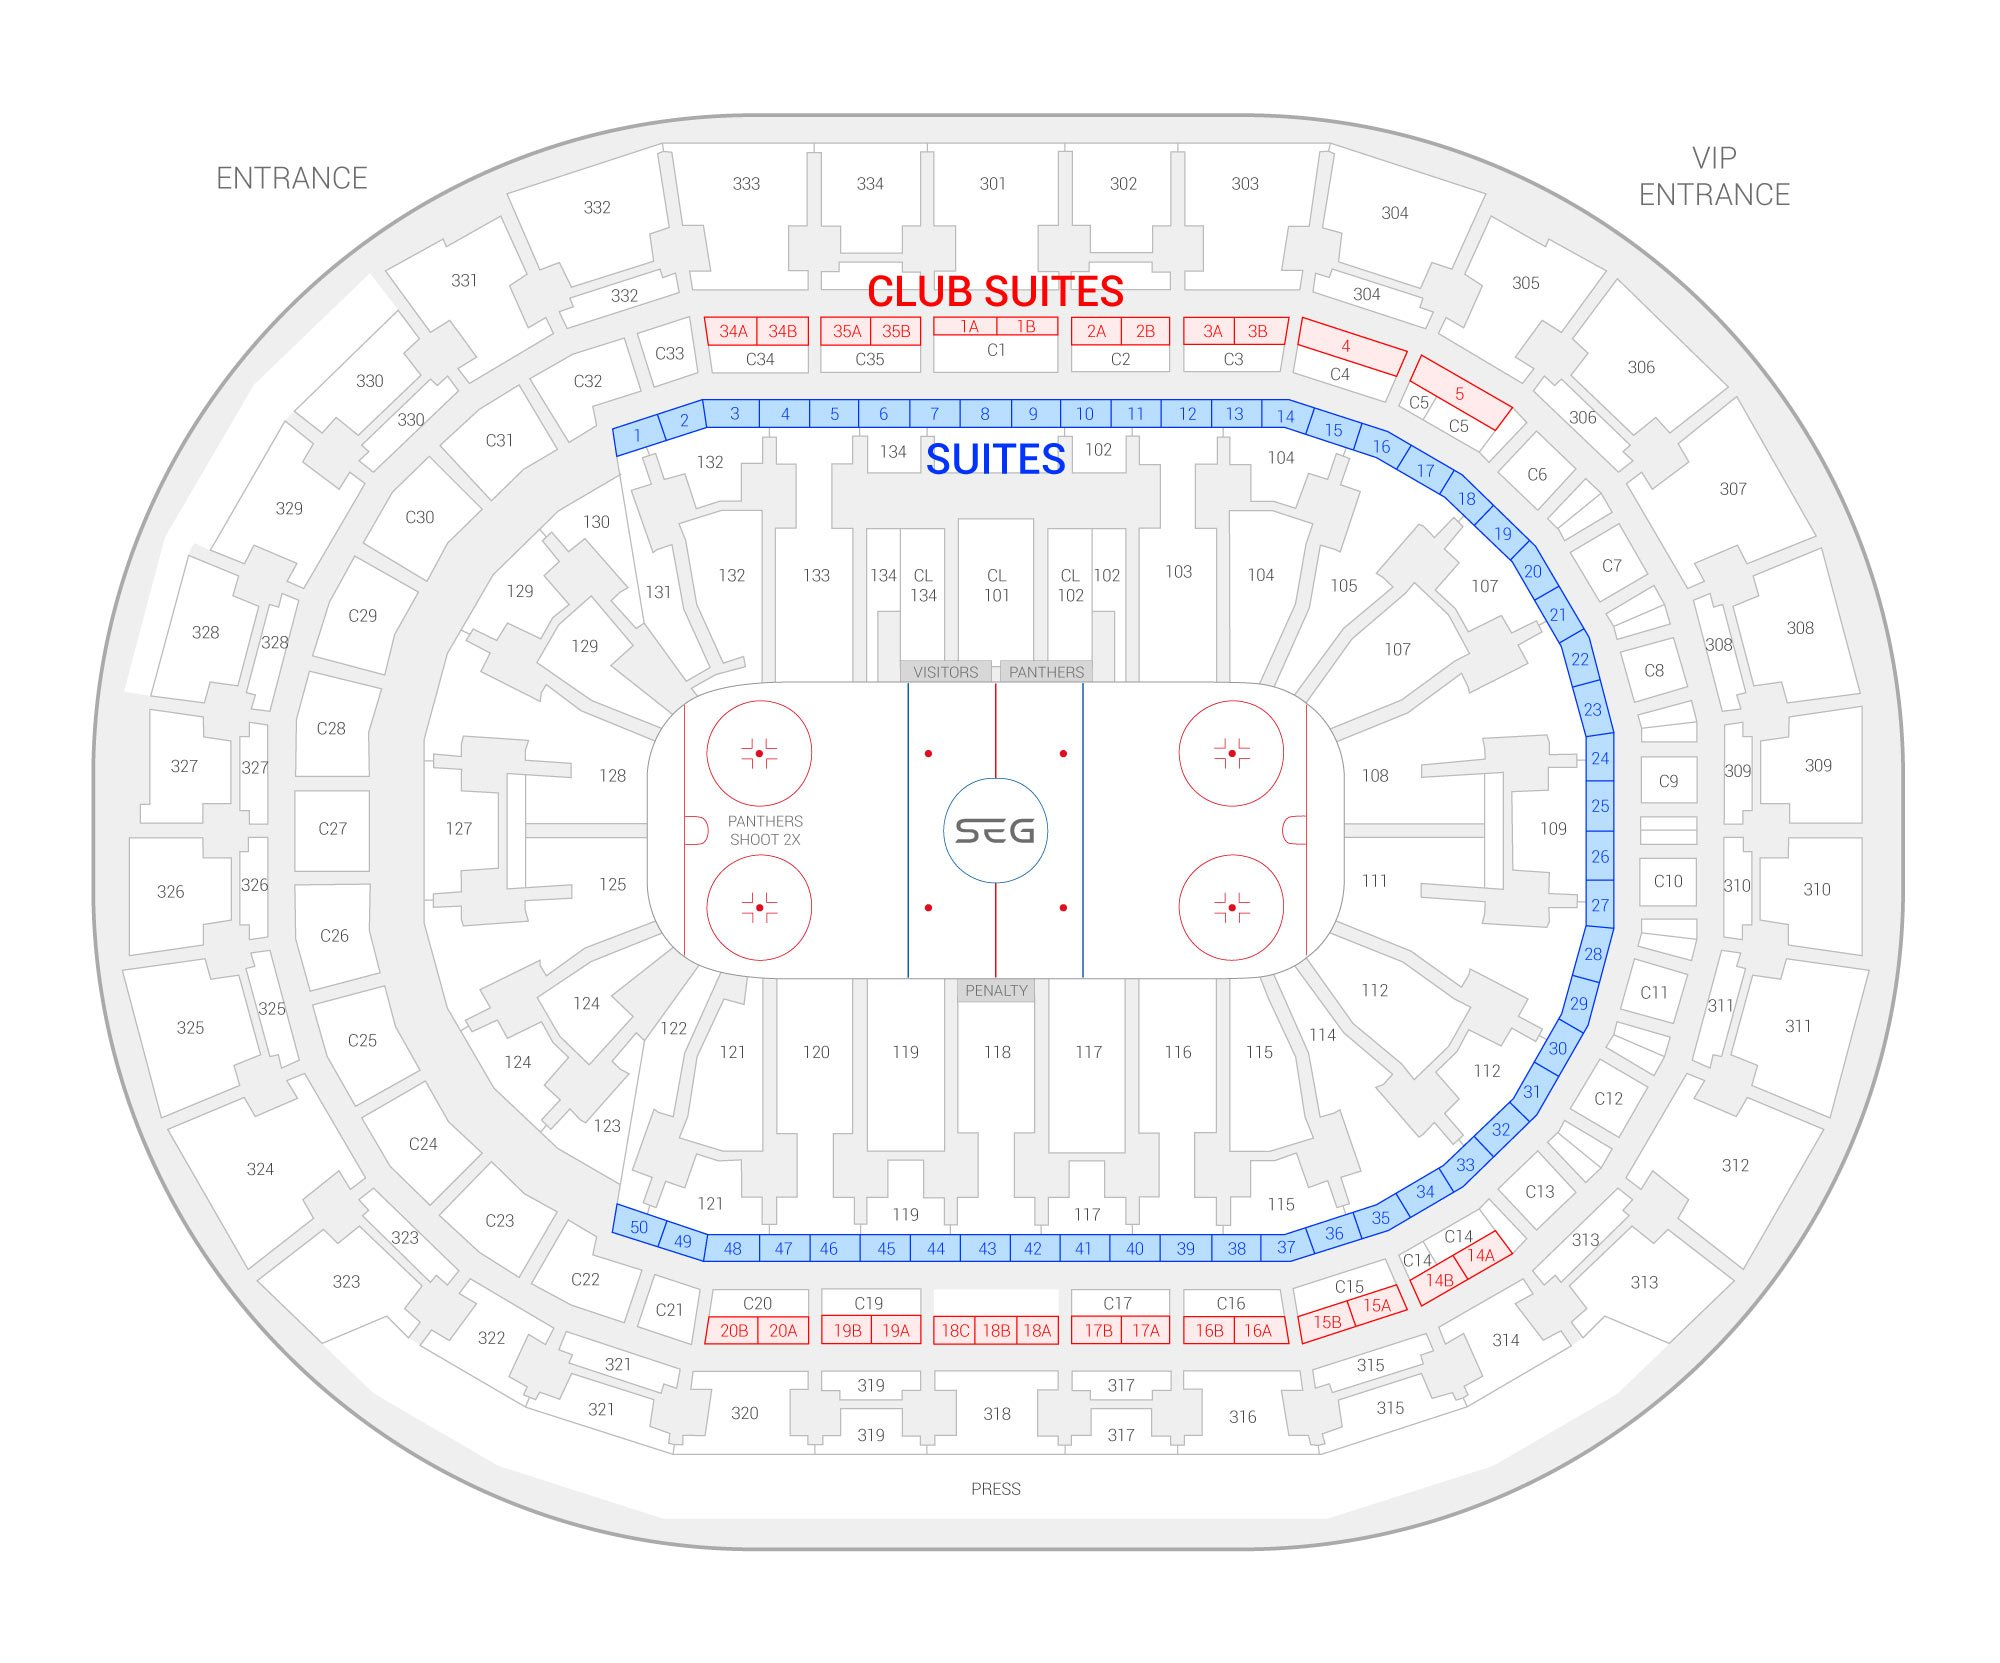 BB&T Center / Florida Panthers Suite Map and Seating Chart